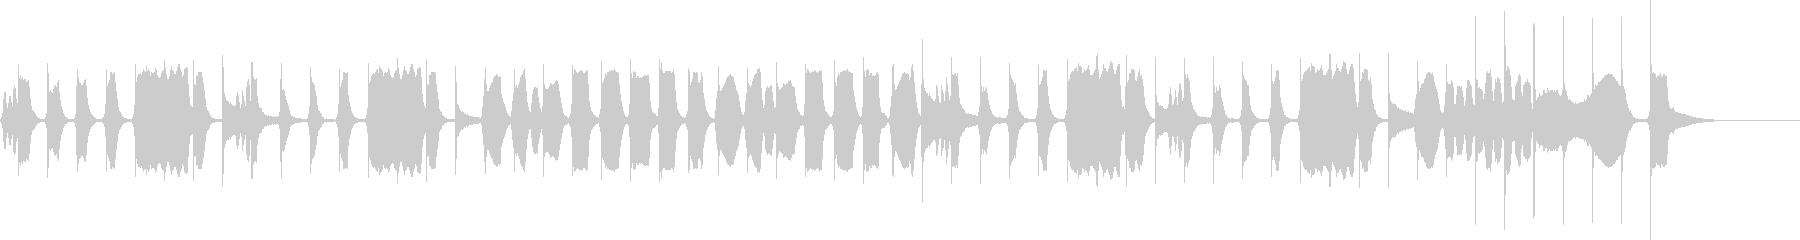 Awkward failure · I have done ...'s unreproduced waveform